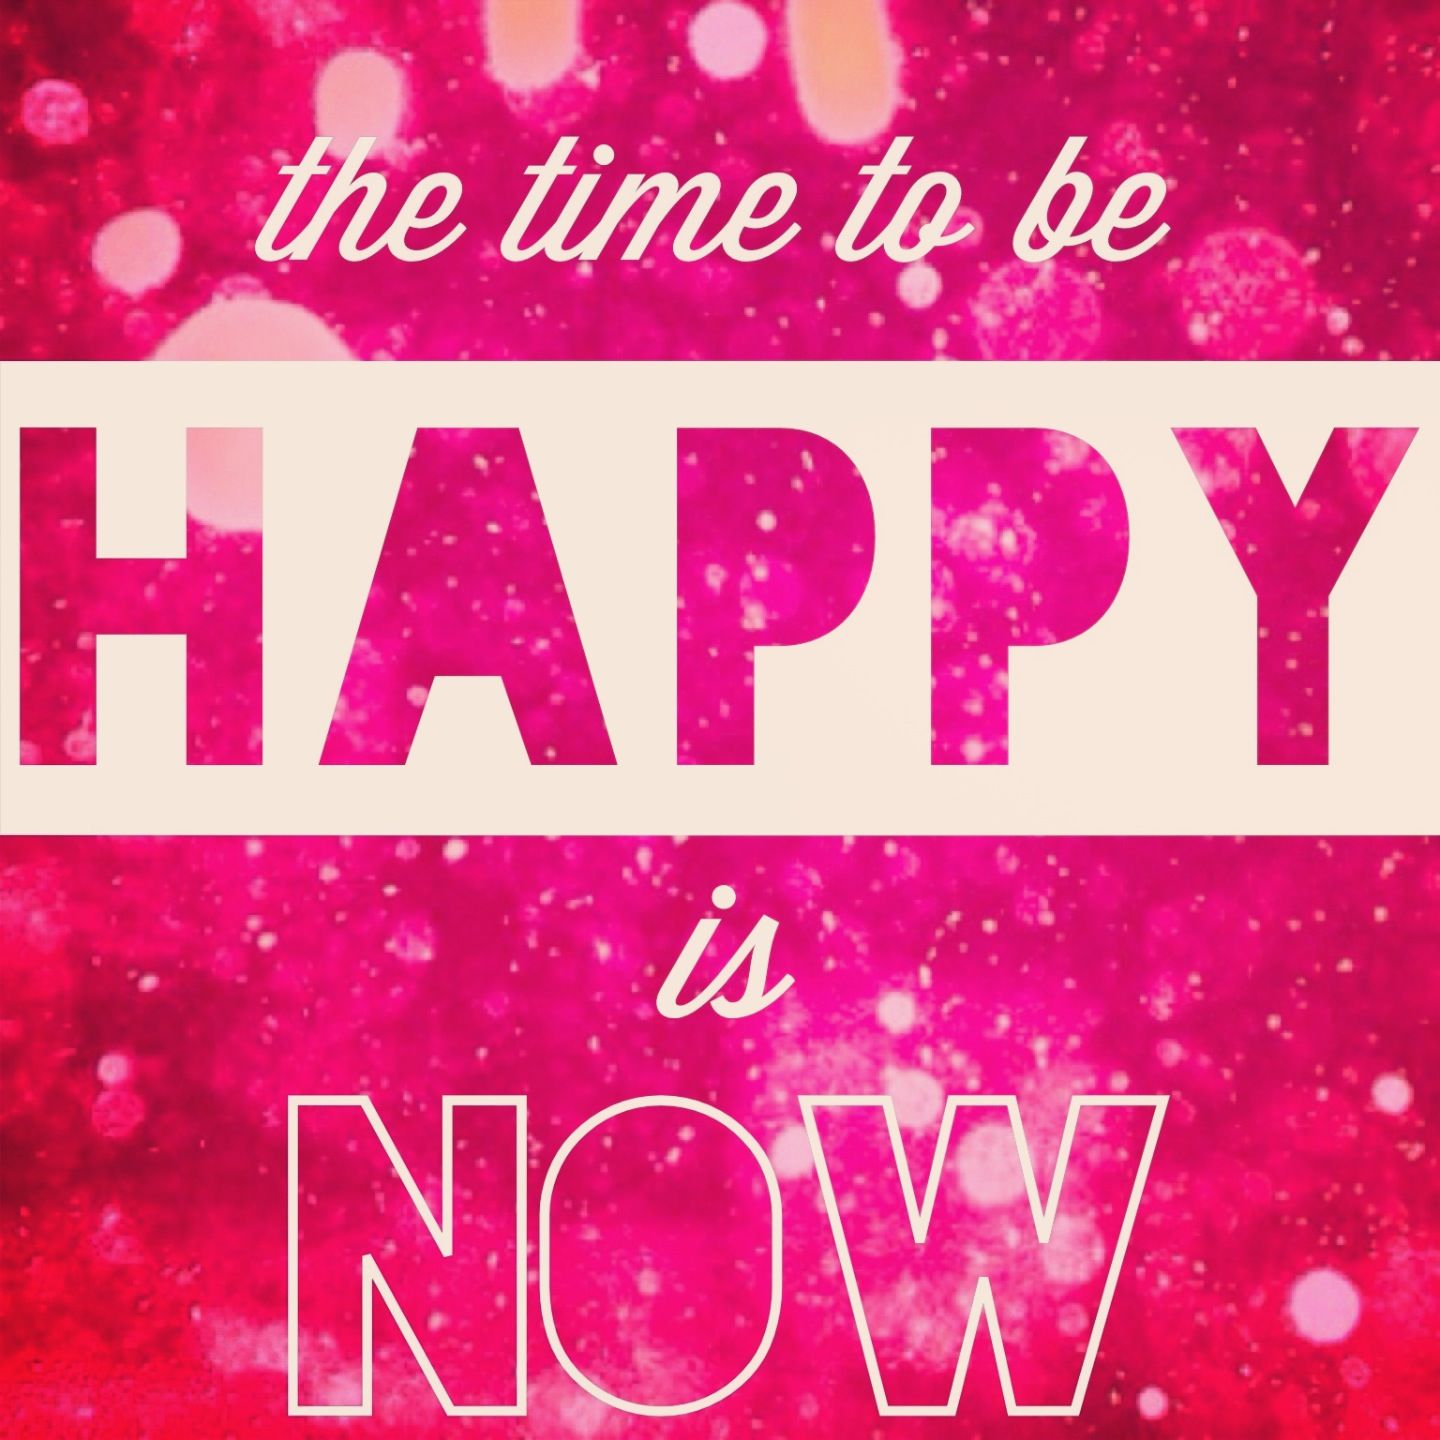 Inspirational Quotes About Happiness: The Time To Be Happy Is Now Pictures, Photos, And Images